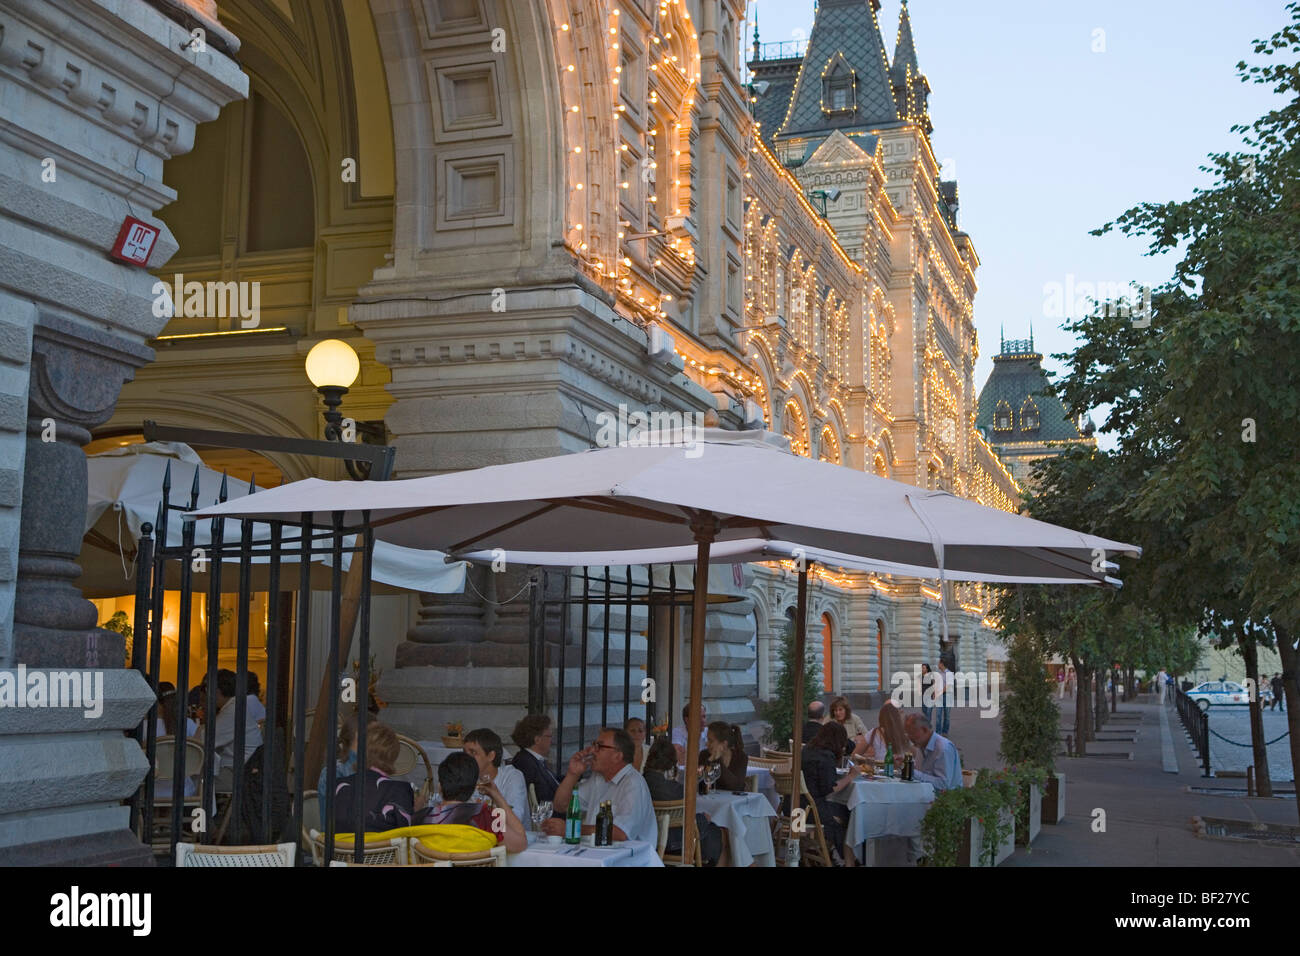 Cafe Bosco in the building of the GUM shopping mall Red square, Moscow, Russia - Stock Image